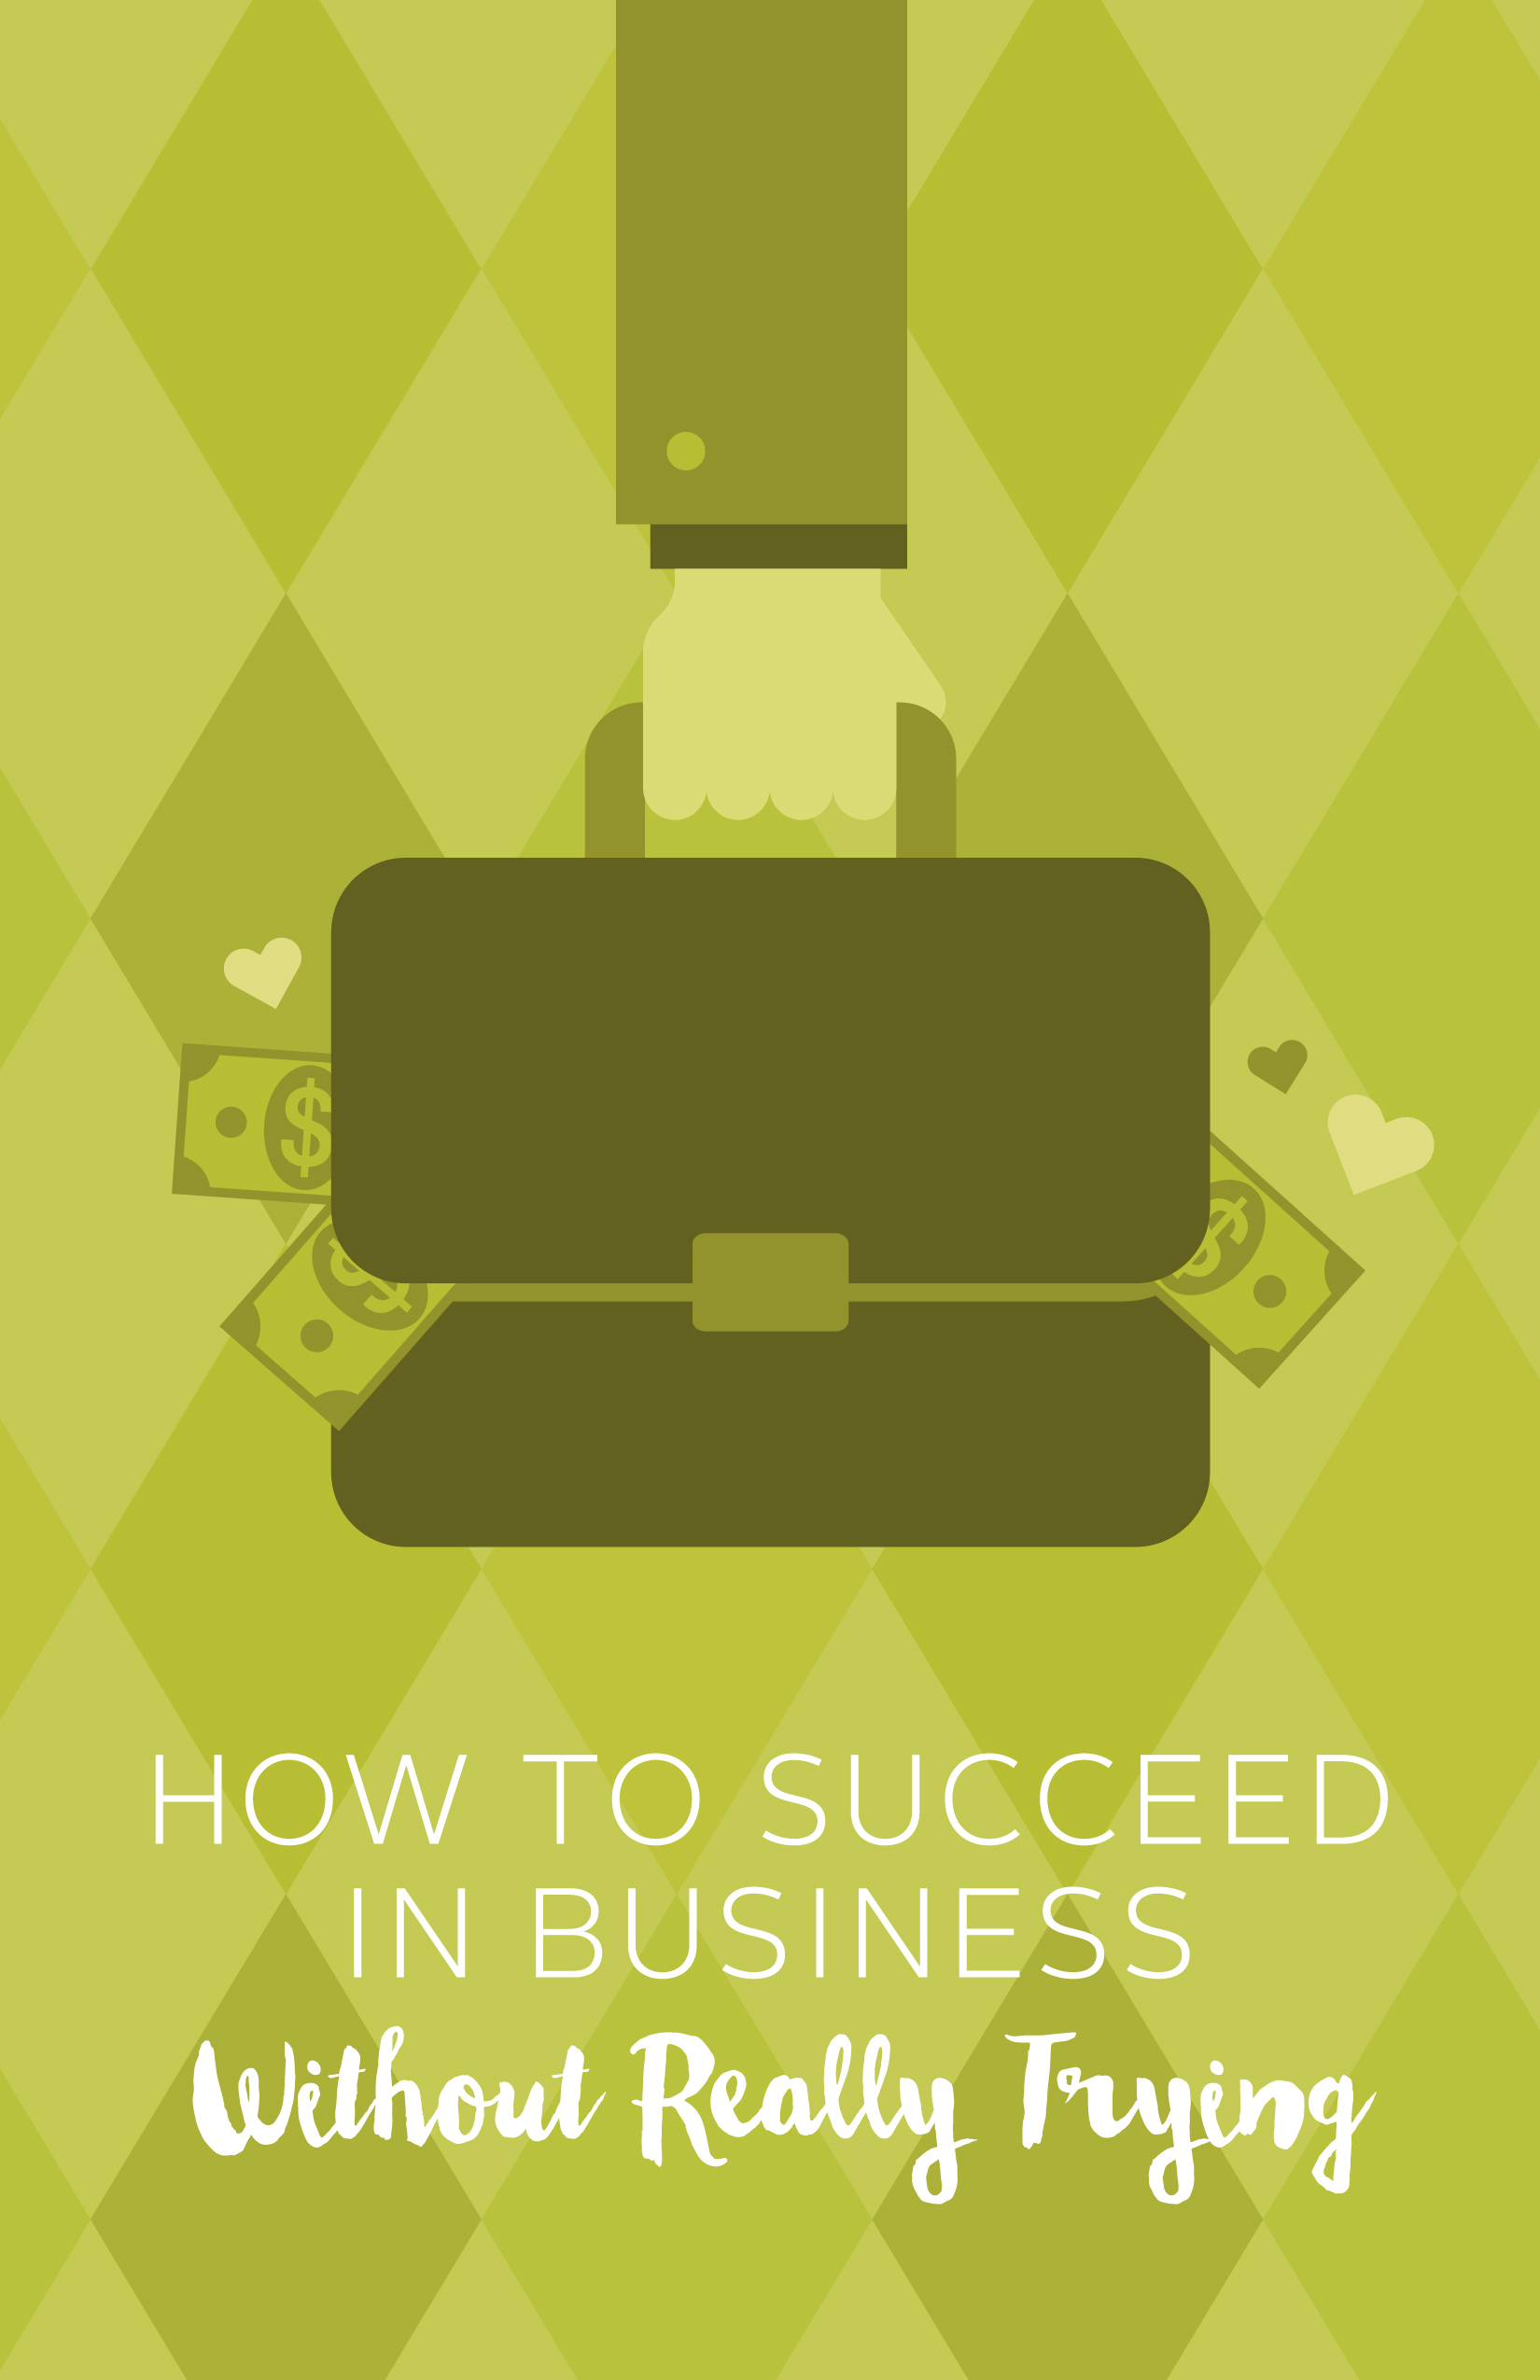 09-HOWTOSUCCEED-Vertical.jpg